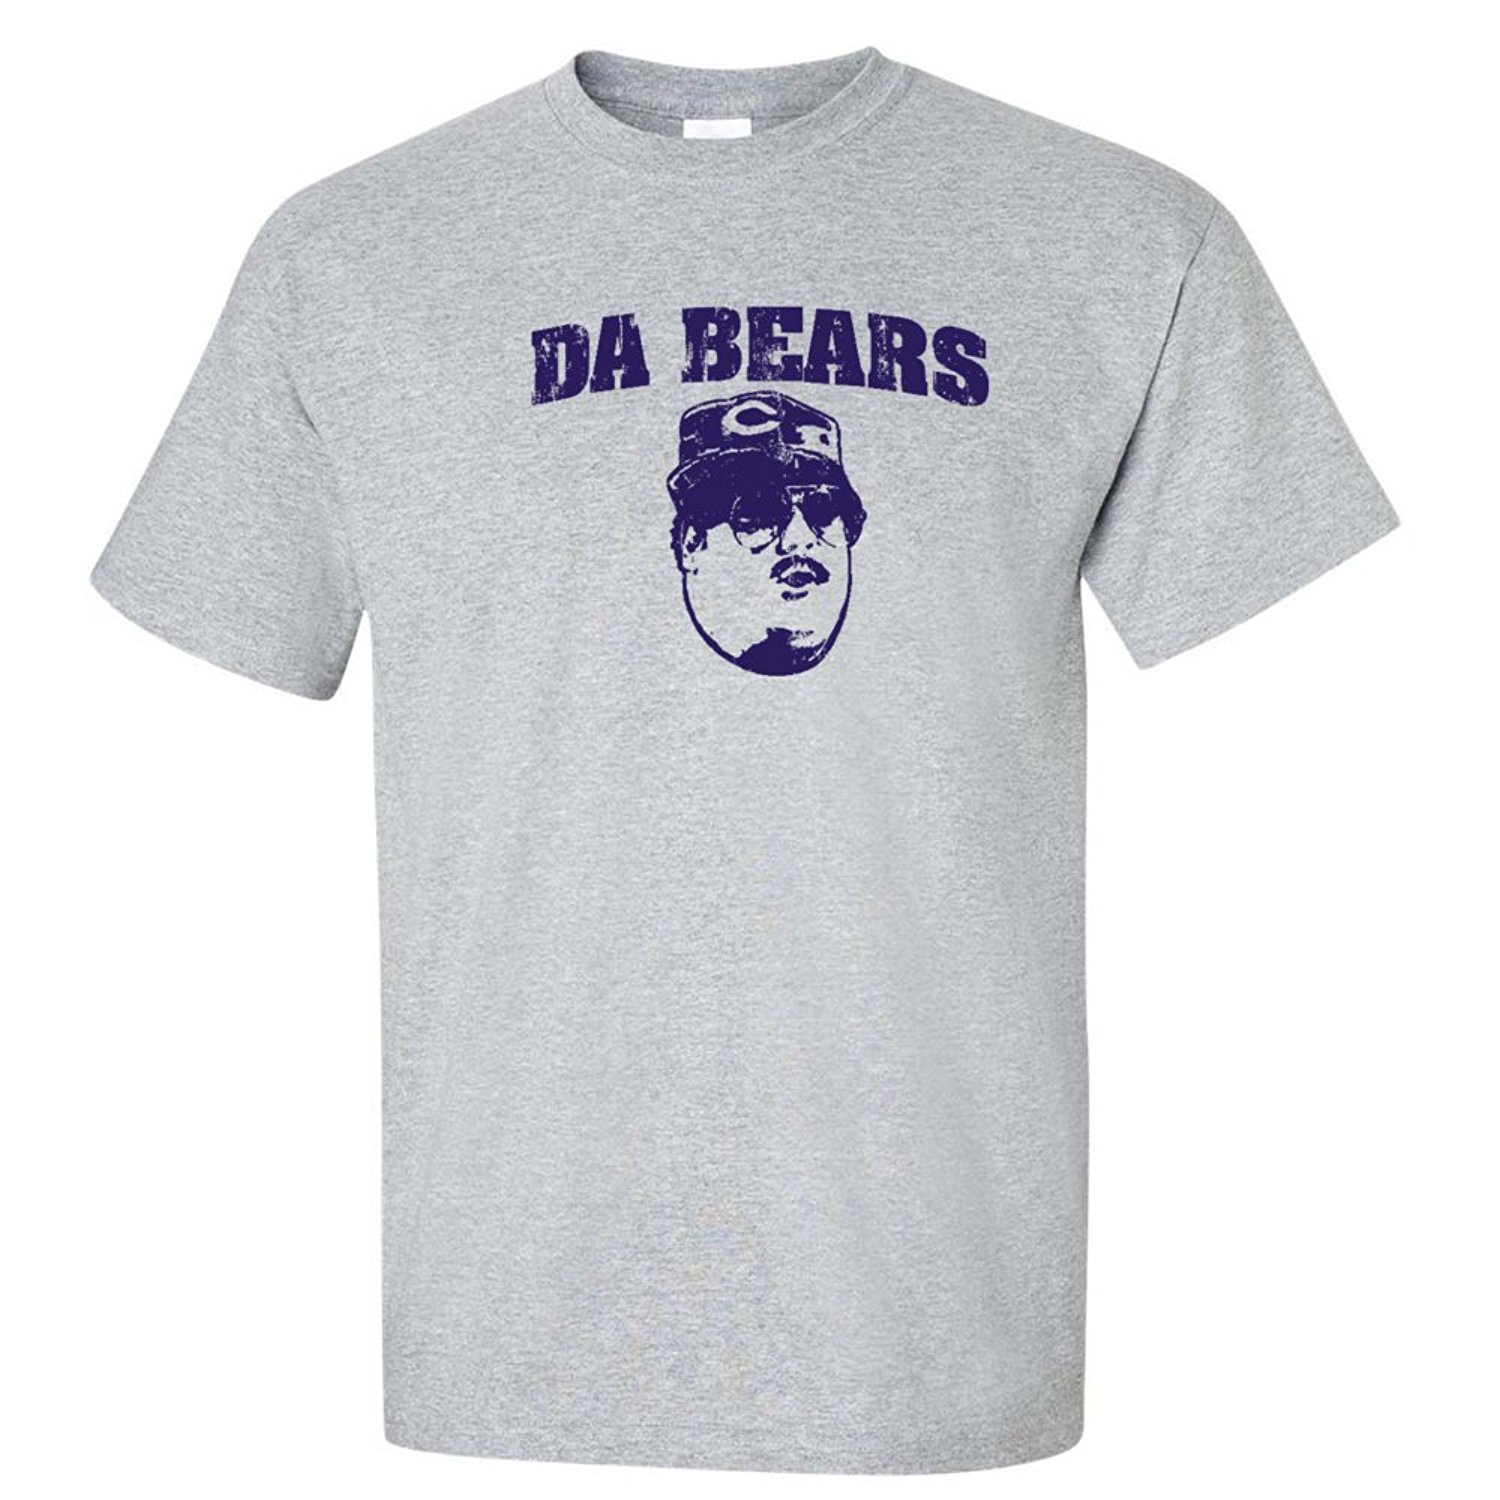 Da Bears Funny Super Fans chicago foot ball jersey MENS T-SHIRT Heather(China (Mainland))